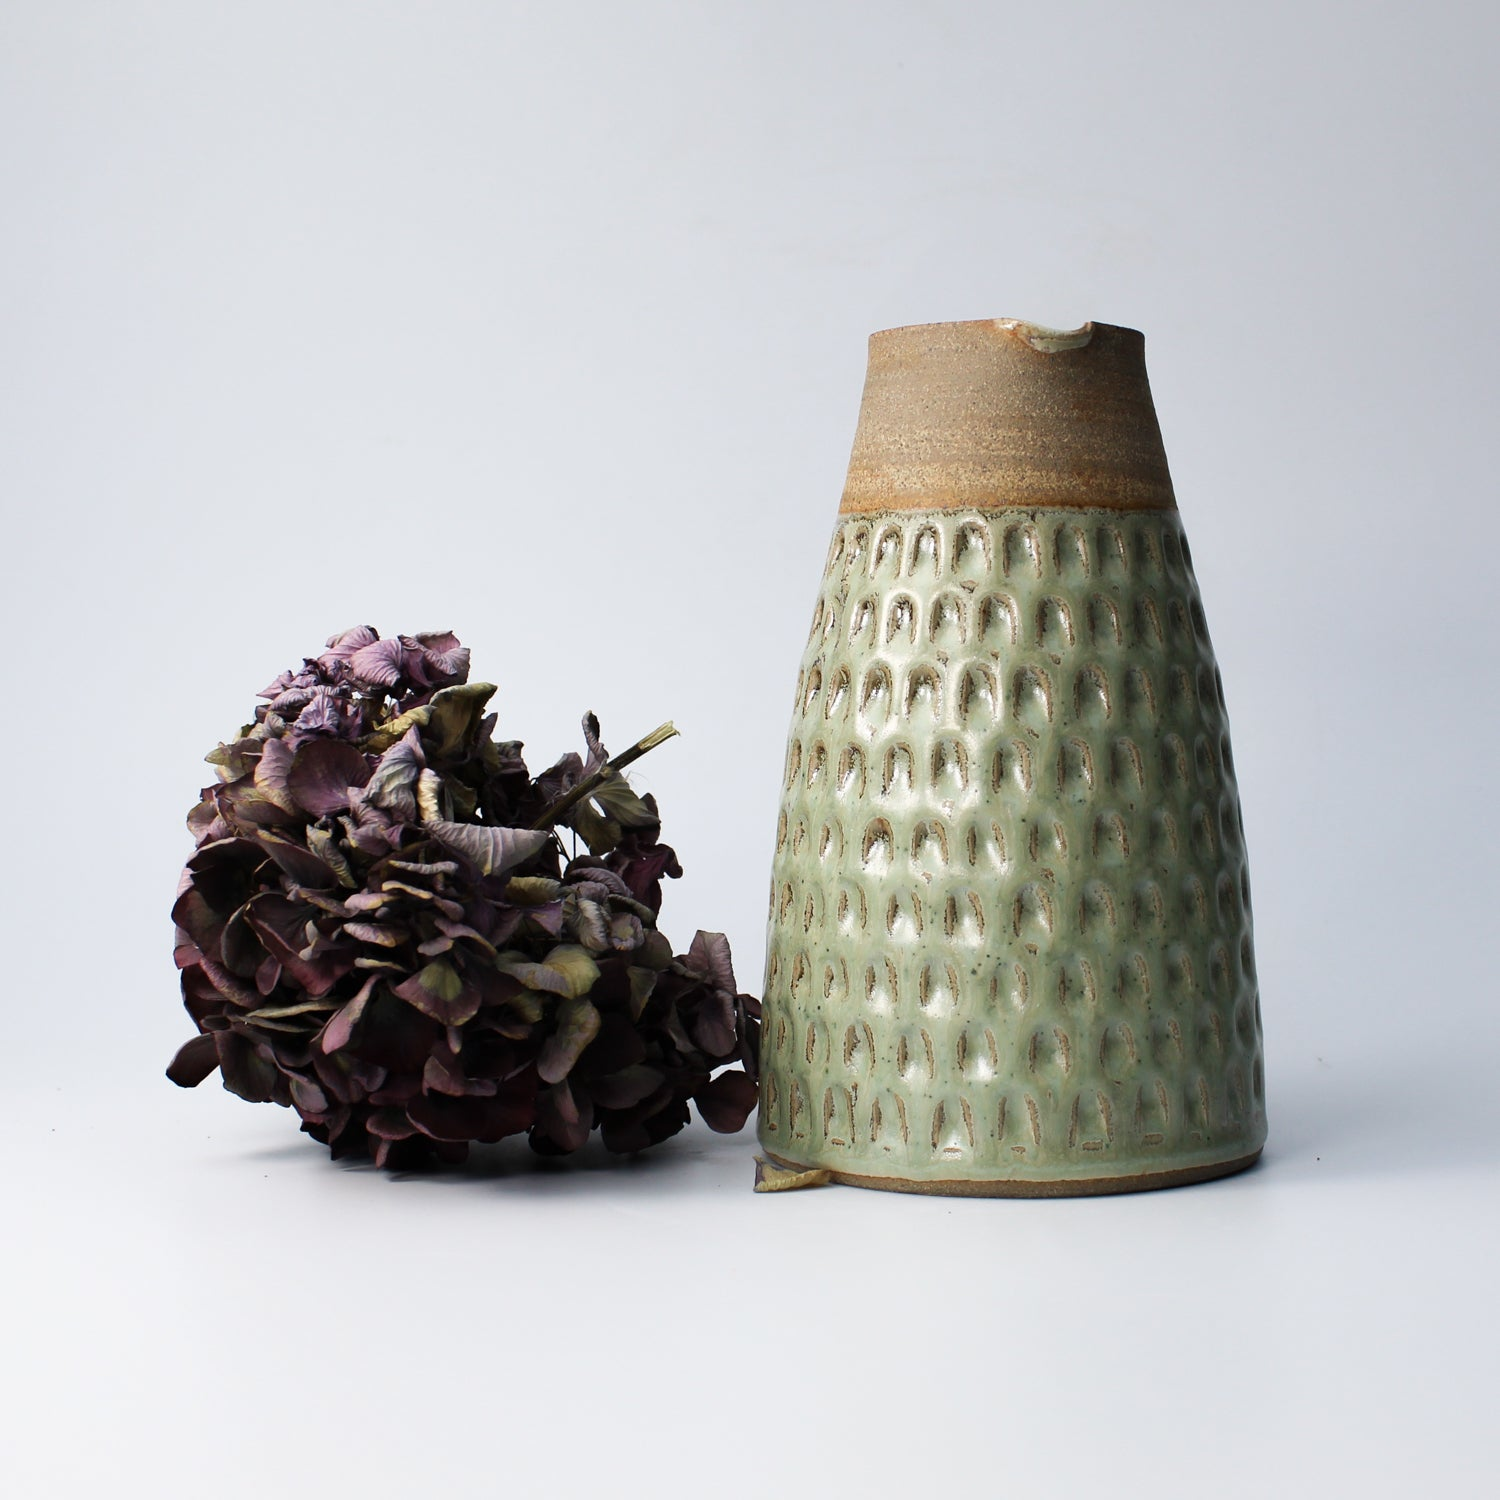 Green and brown stoneware jug next to dried purple flower head